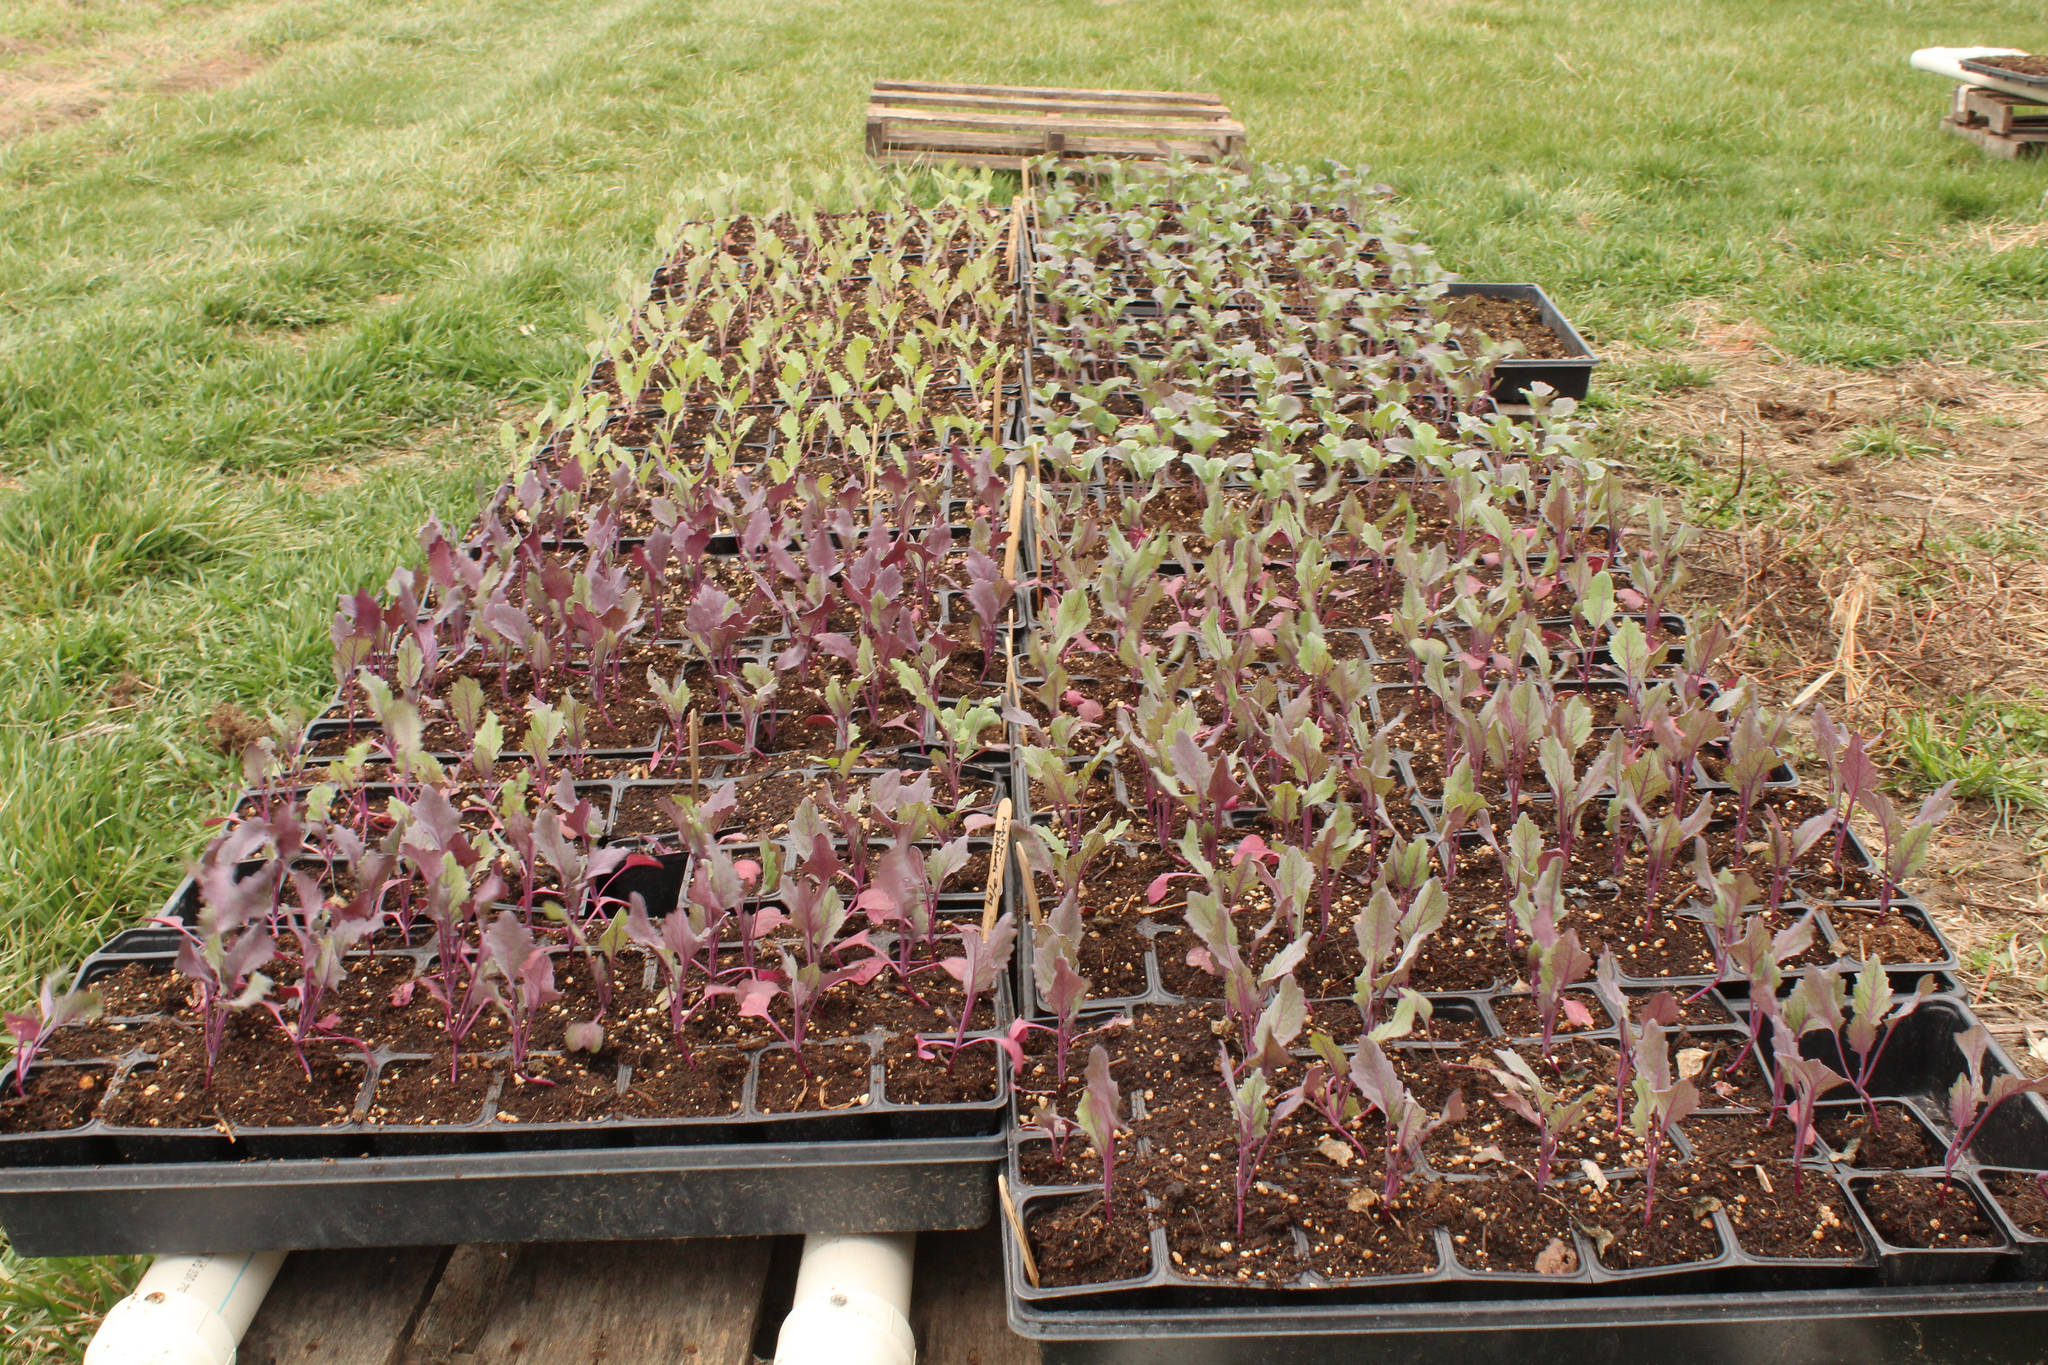 Brassica seedlings being hardened off to acclimate to outdoor conditions; photo courtesy of Flickr cc/ Spraints